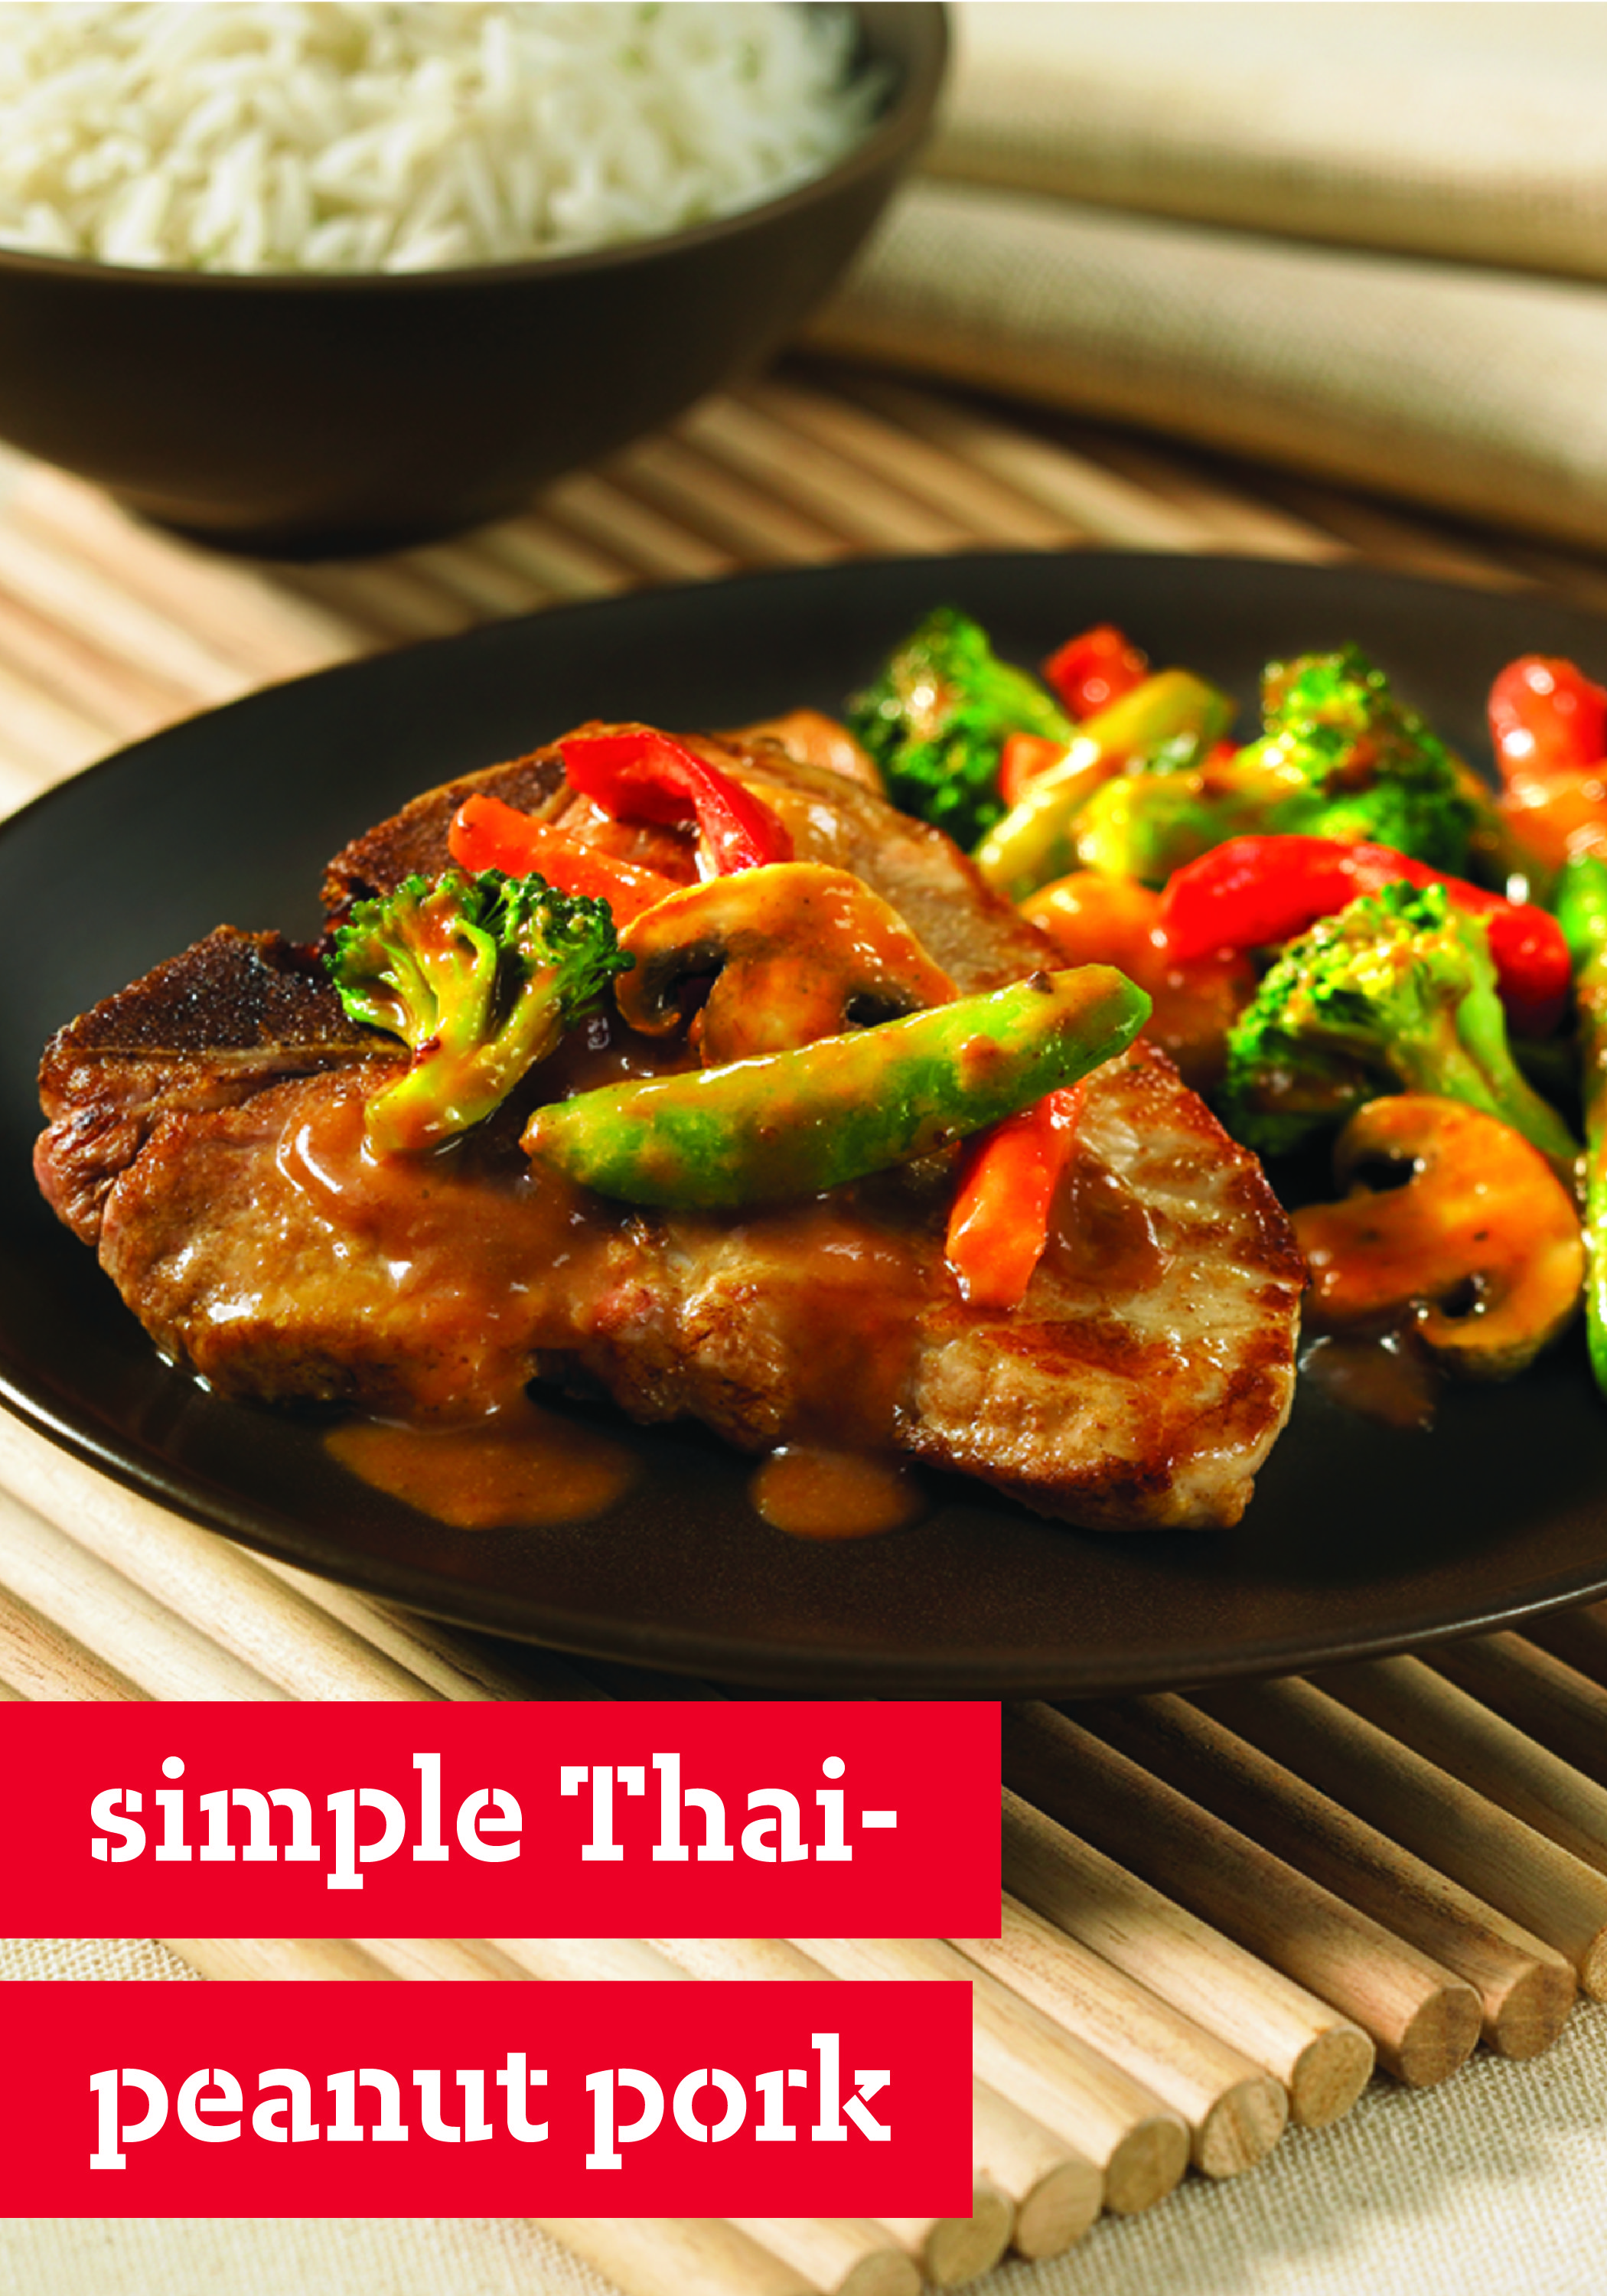 Simple Thai-Peanut Pork – Enjoy takeout-style pork chops—in less time than delivery would take! This Simple Thai-Peanut Pork recipe is ready for the dinner table in less than 20 minutes.